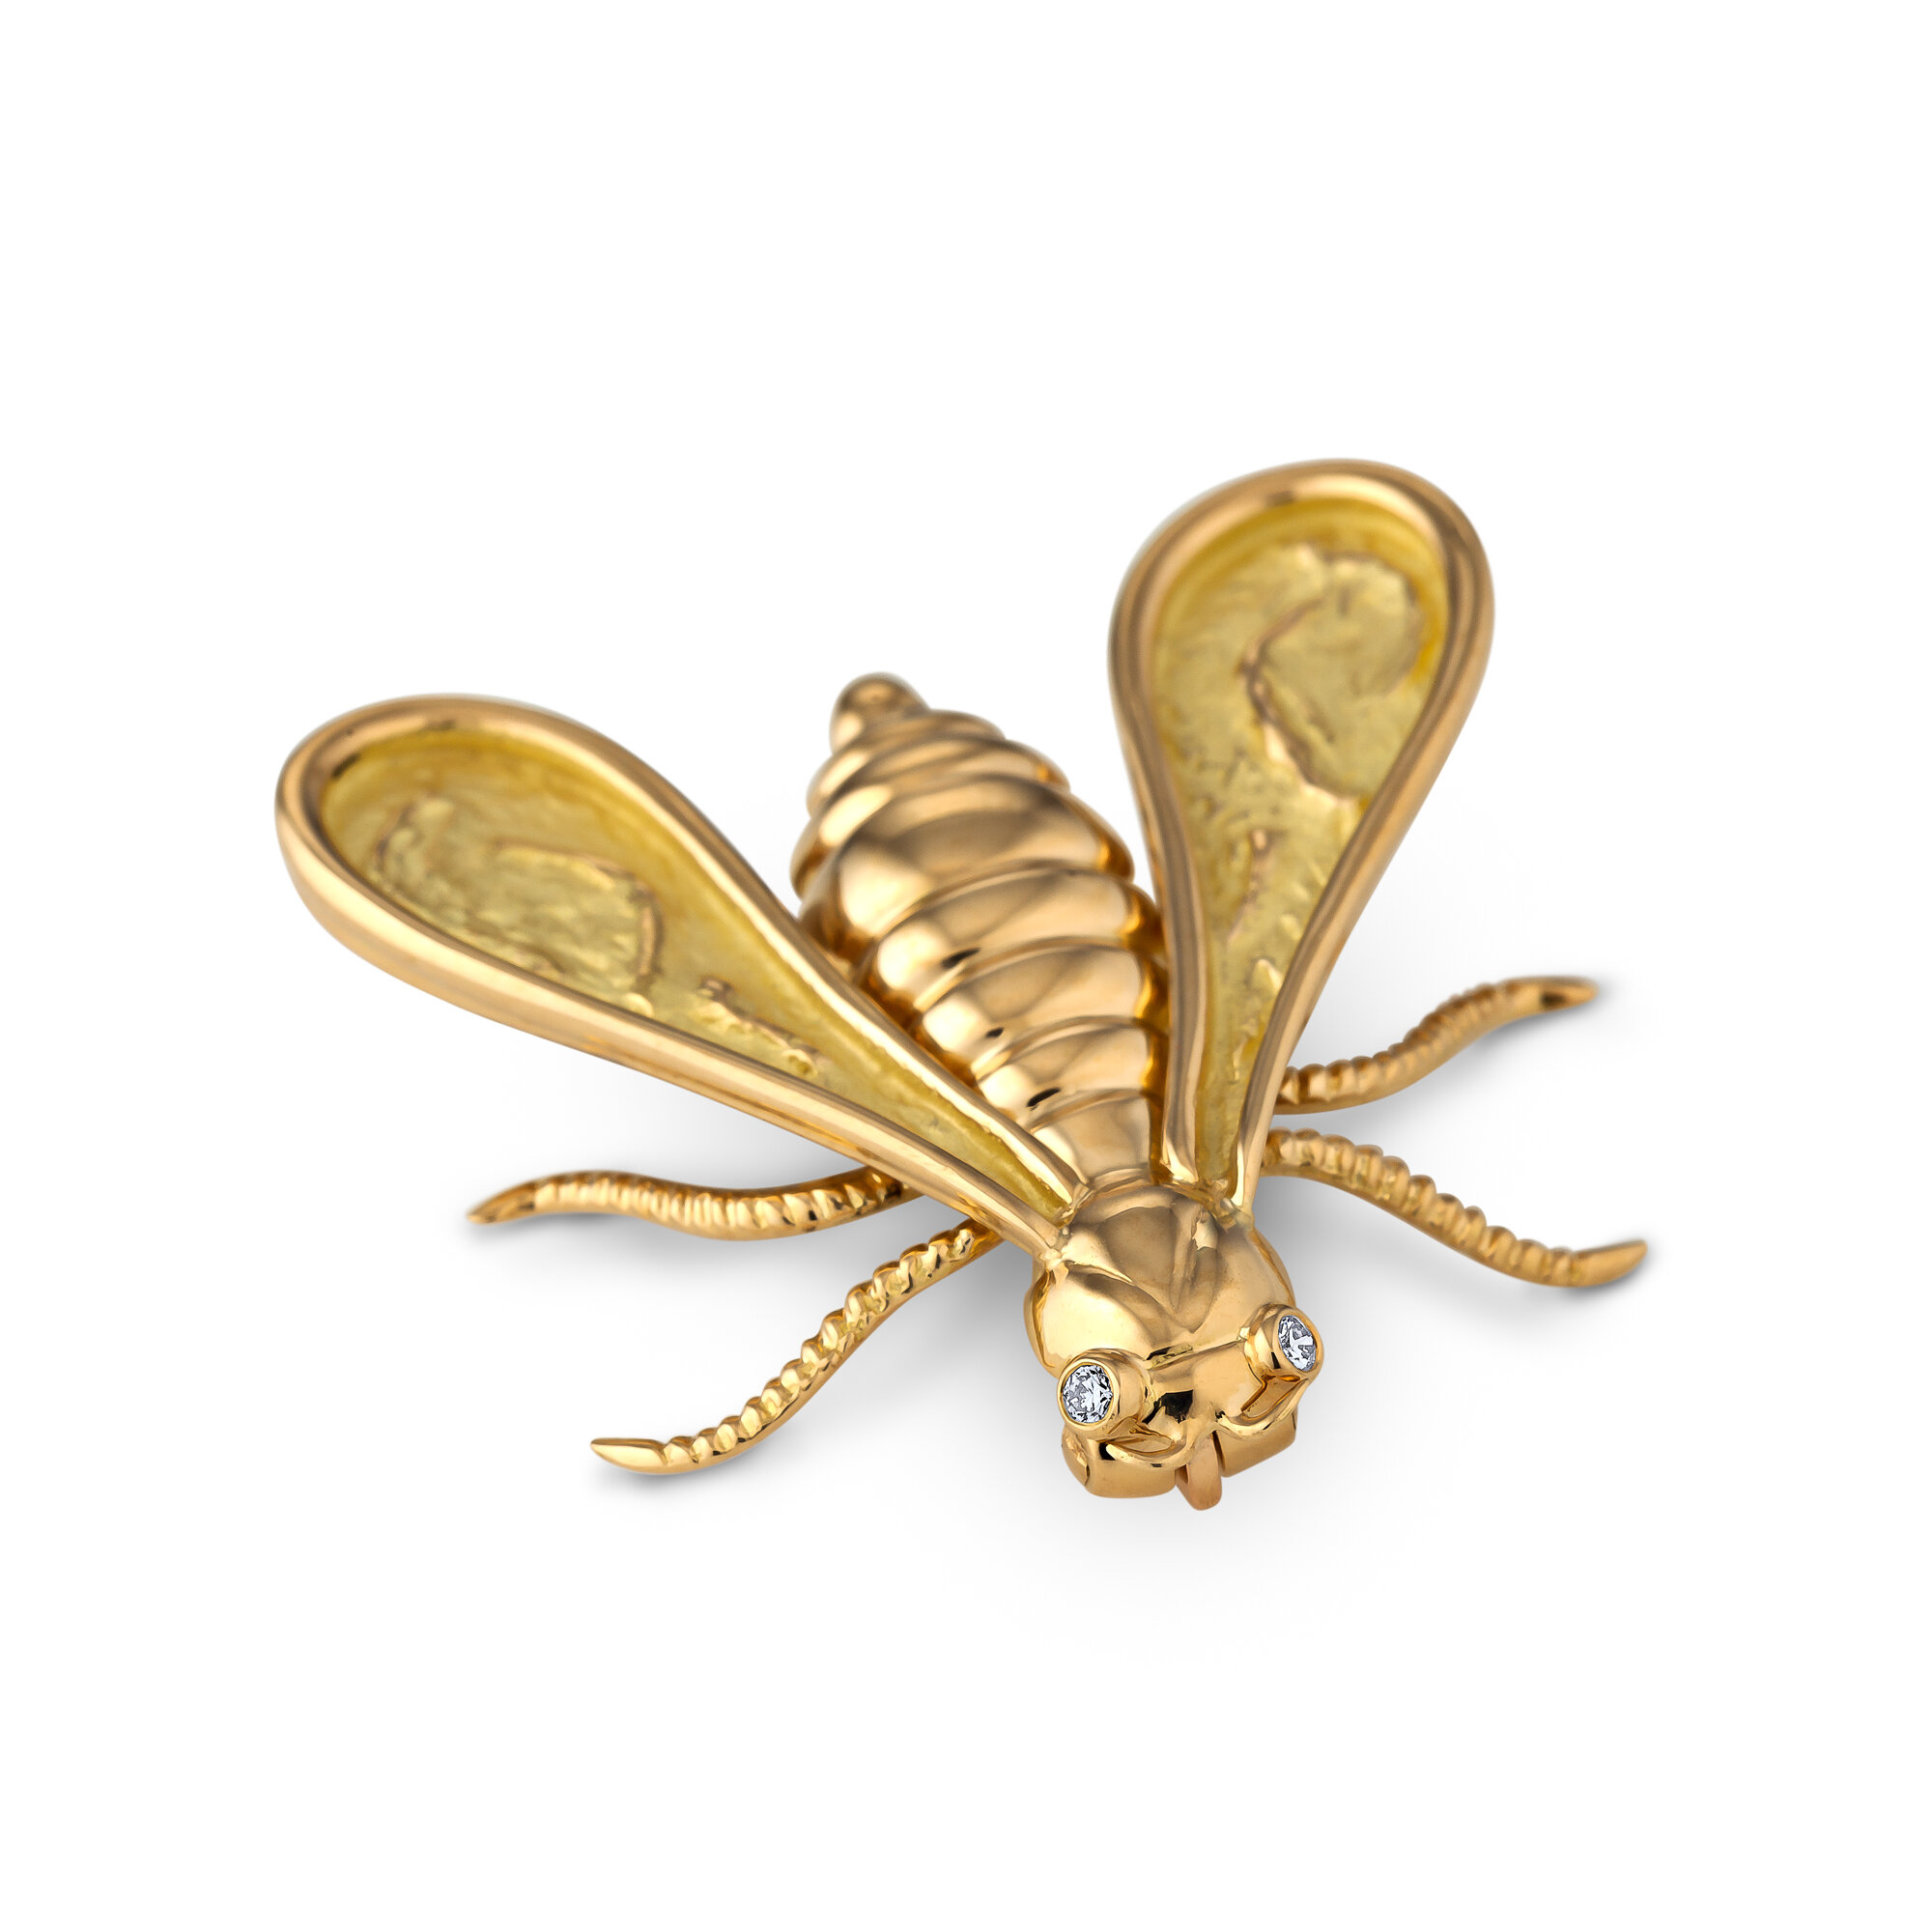 Designer Brooches: Vintage & Estate Brooches | Steven Fox Jewelry